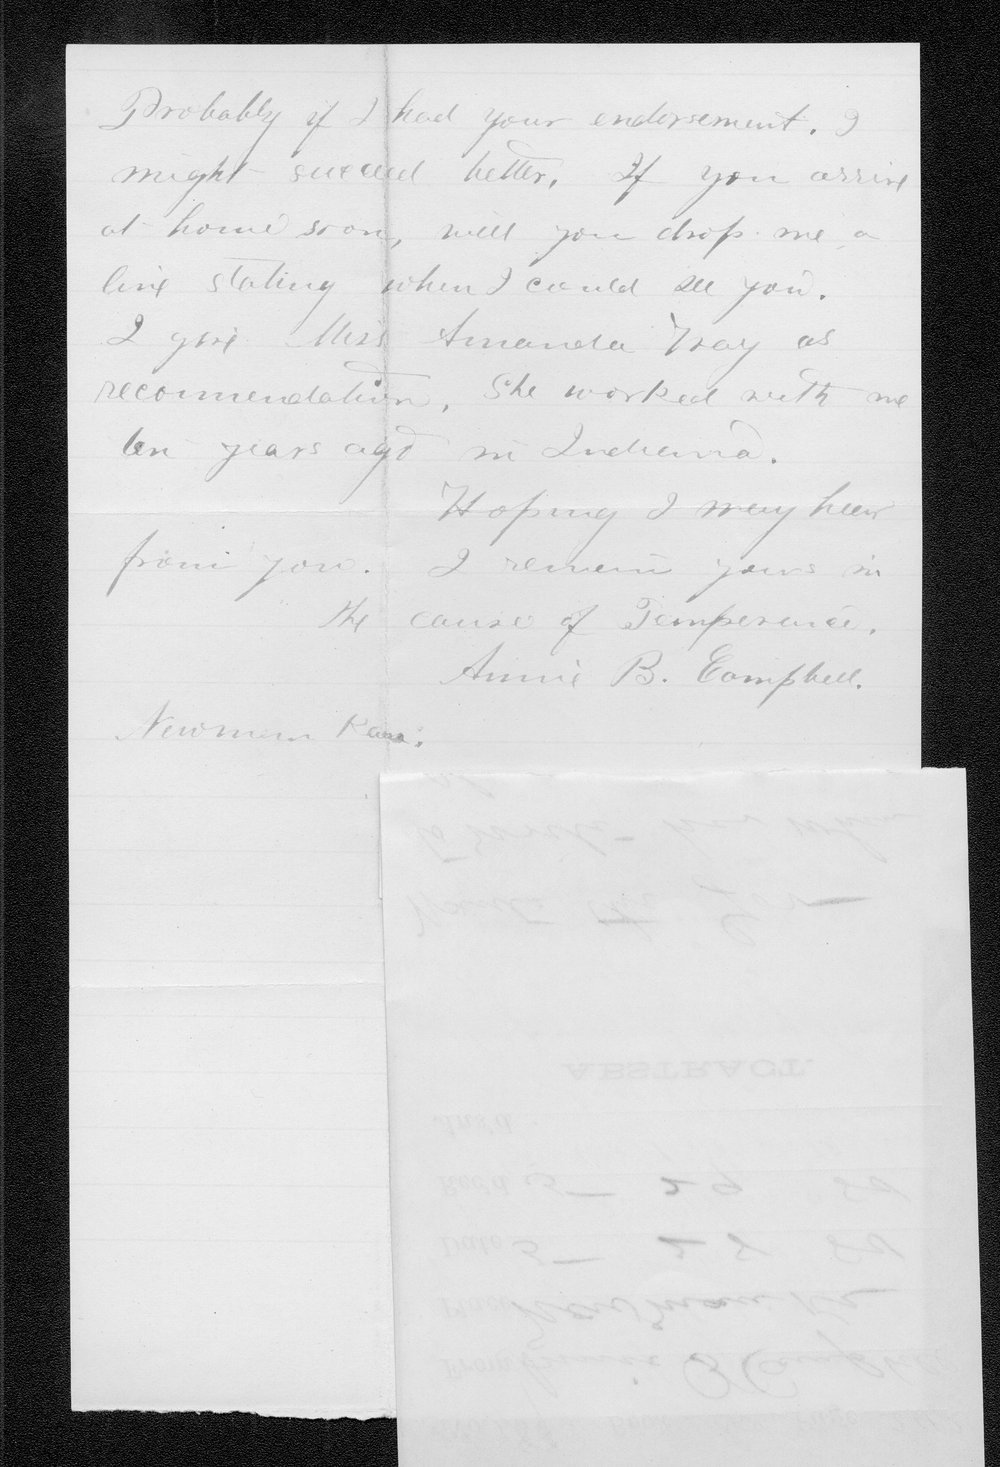 Annie B. Campbell to Governor John St. John - 2